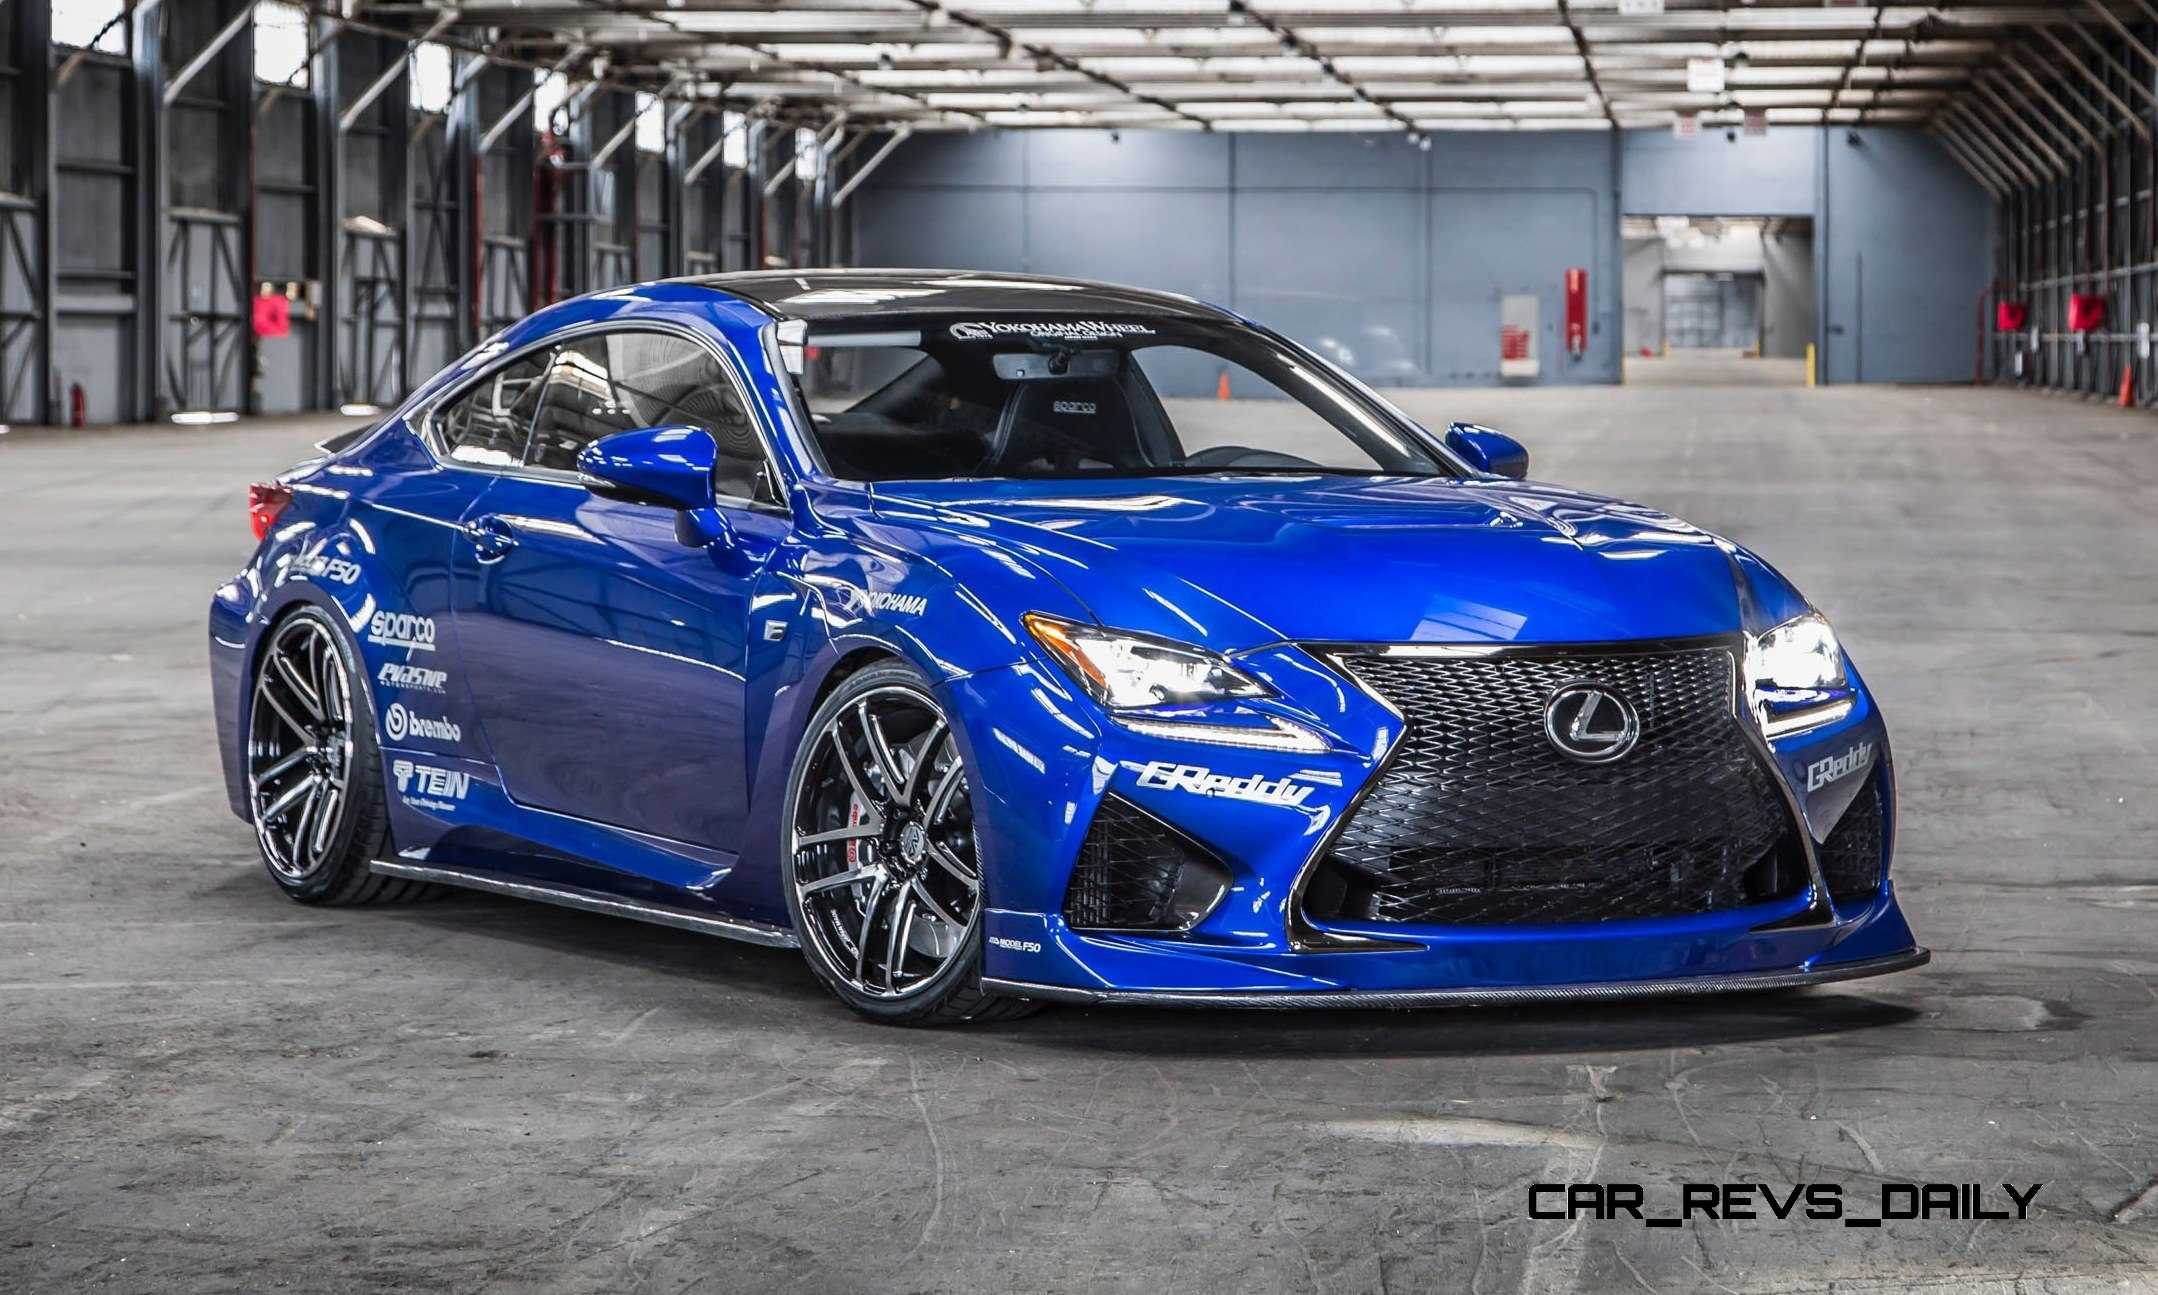 best of sema 2015 lexus rc f by gordon ting in 27 high res photos. Black Bedroom Furniture Sets. Home Design Ideas